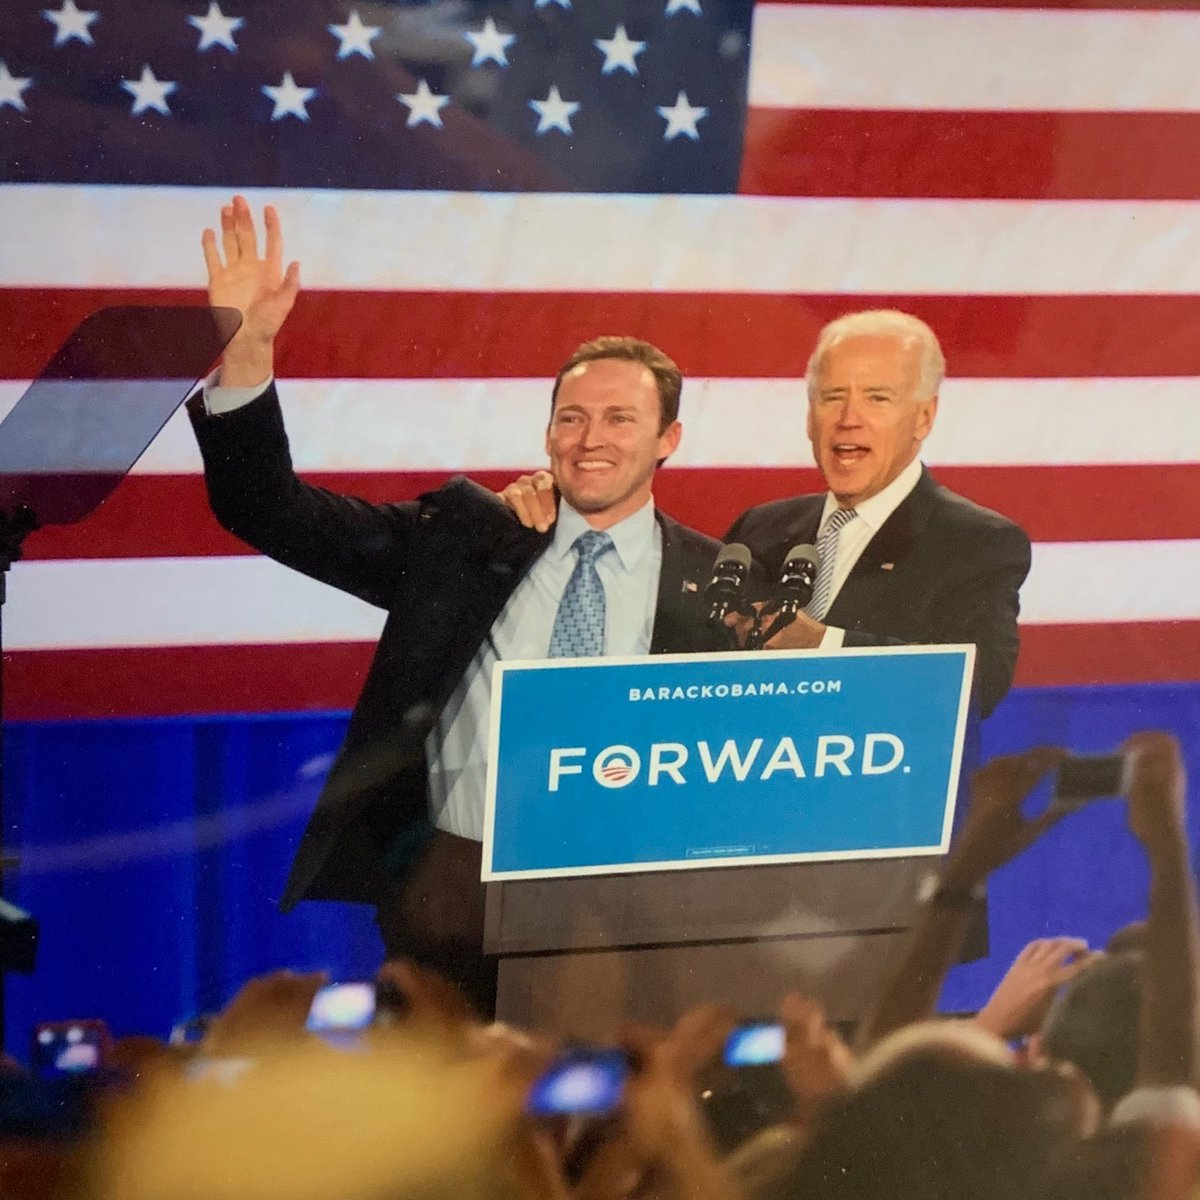 PatrickMurphyFL photo